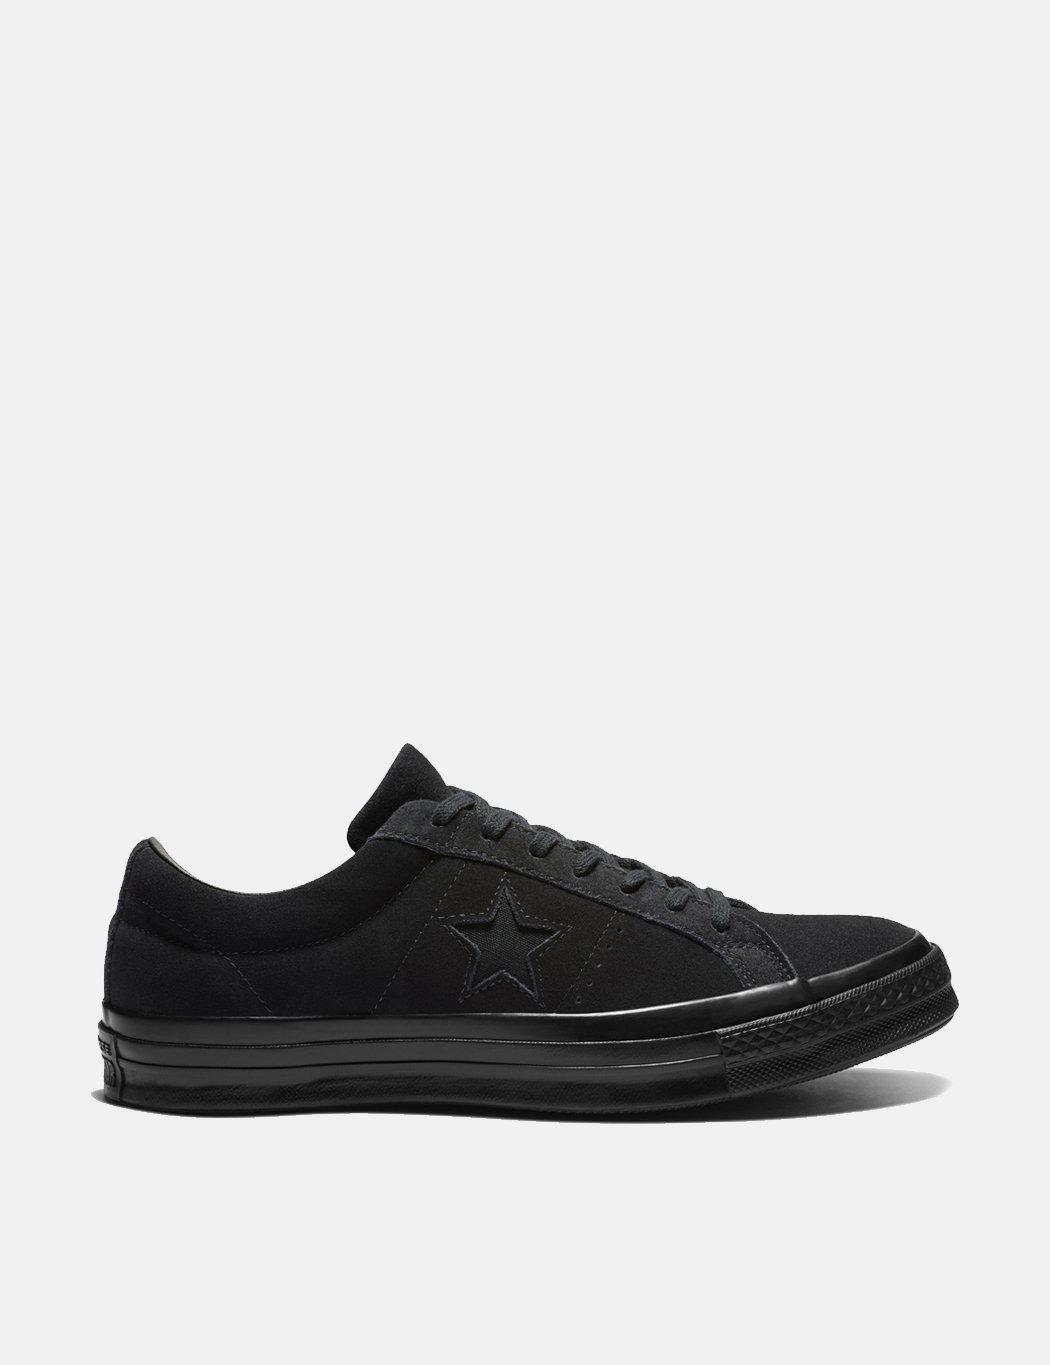 Lyst - Converse One Star Ox Suede Sneakers in Black for Men - Save 77% 8067a414c